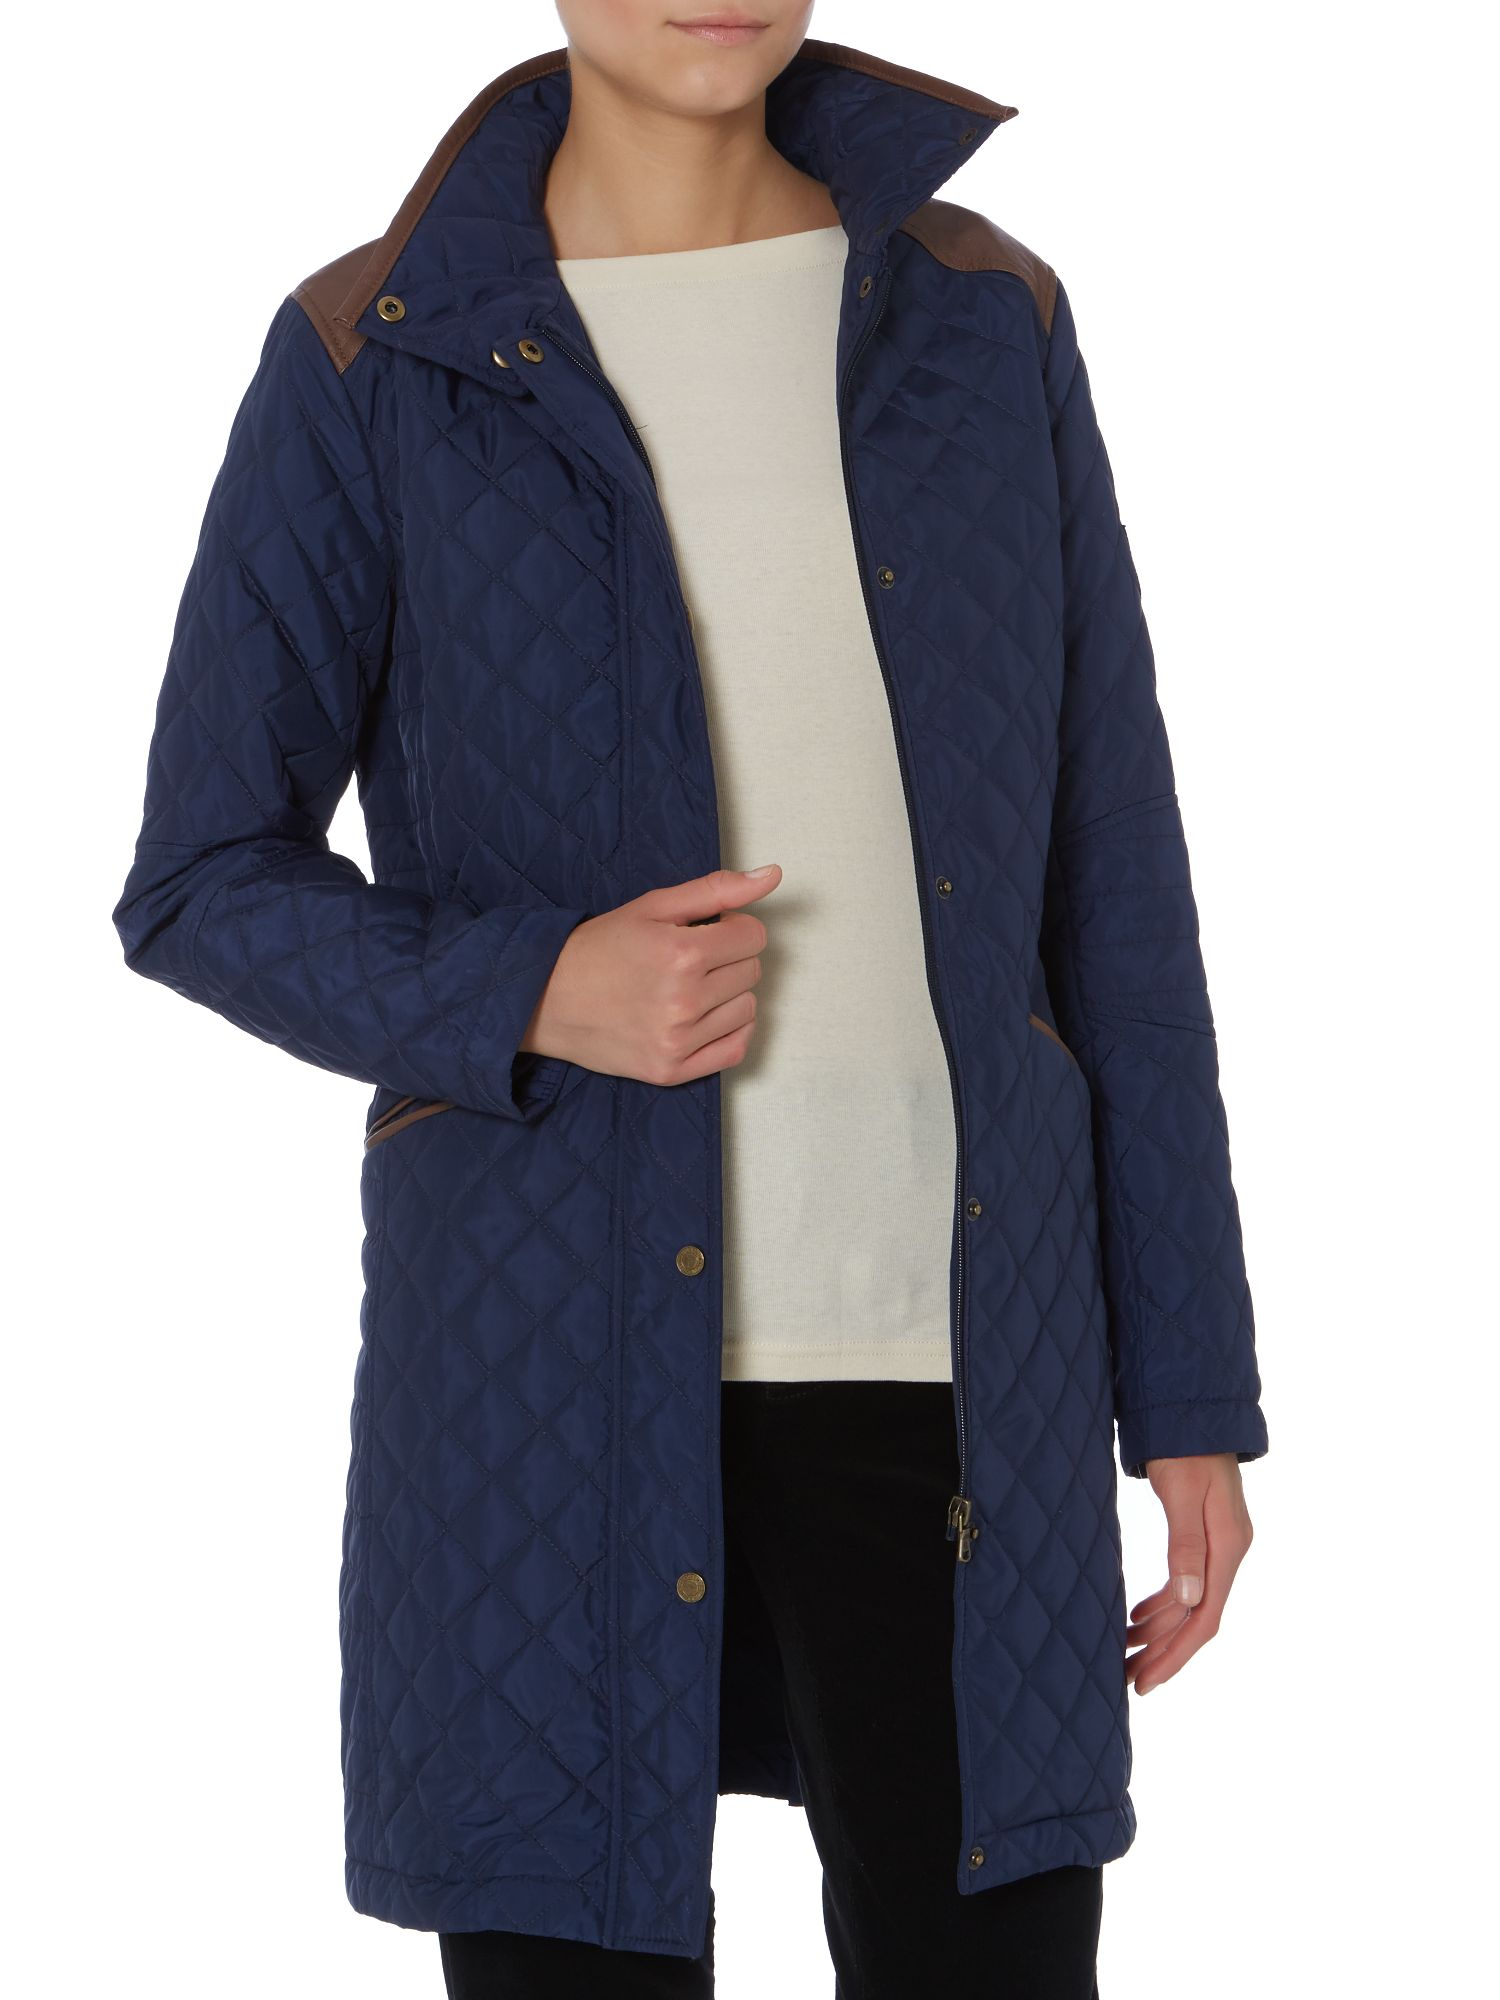 Lauren by ralph lauren Long Line Quilted Jacket With Shoulder ...